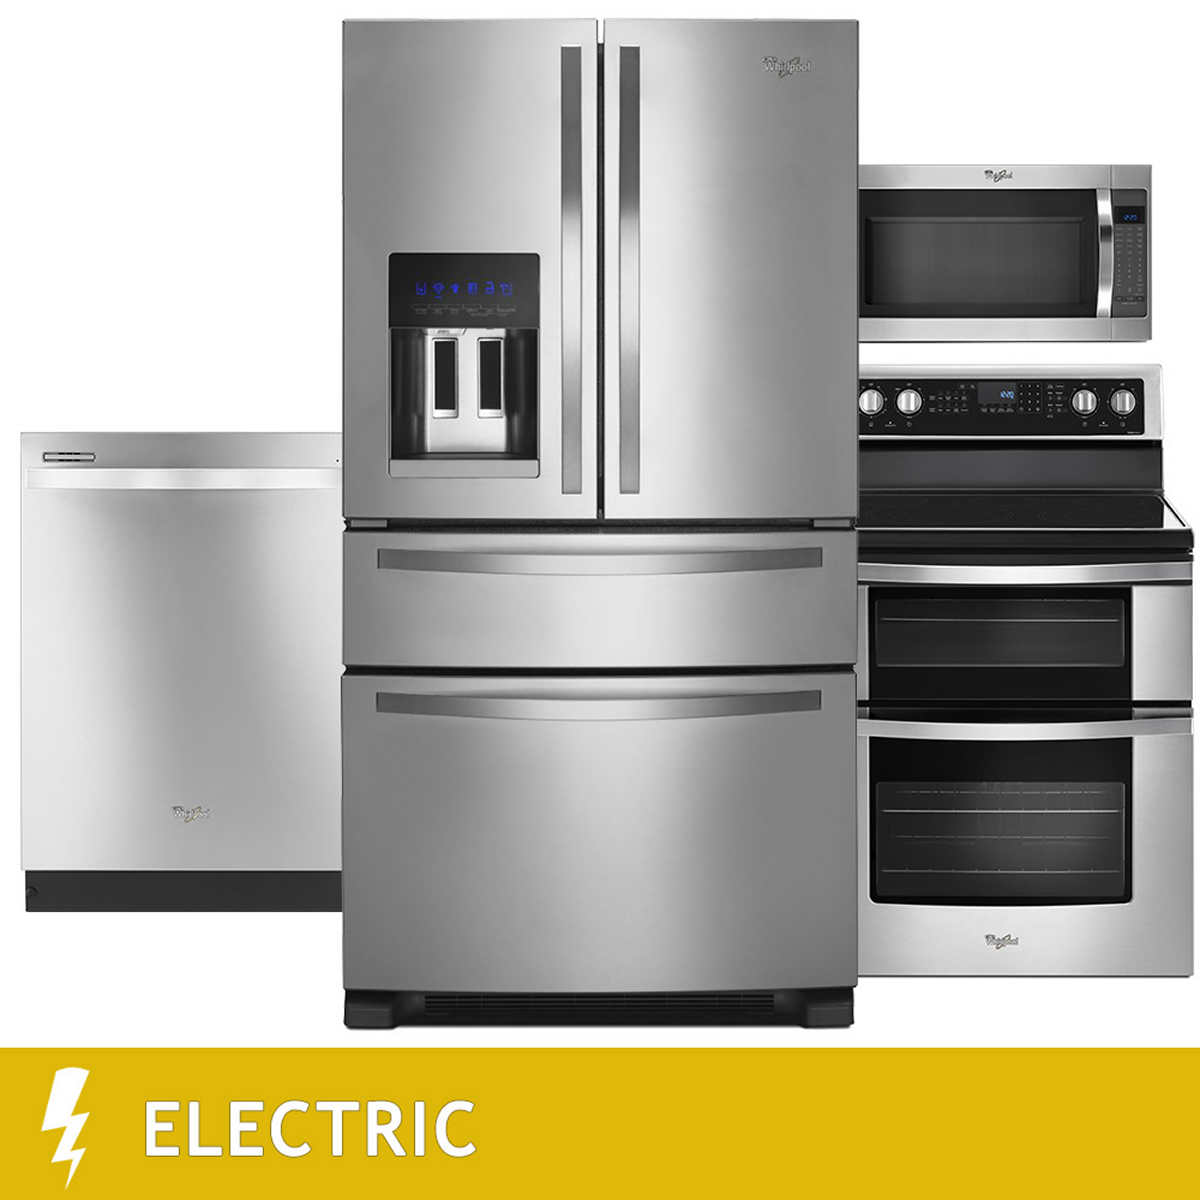 Whirlpool white ice costco canada - Whirlpool 4 Piece Electric 25cuft 4 Door French Door Kitchen Suite In Stainless